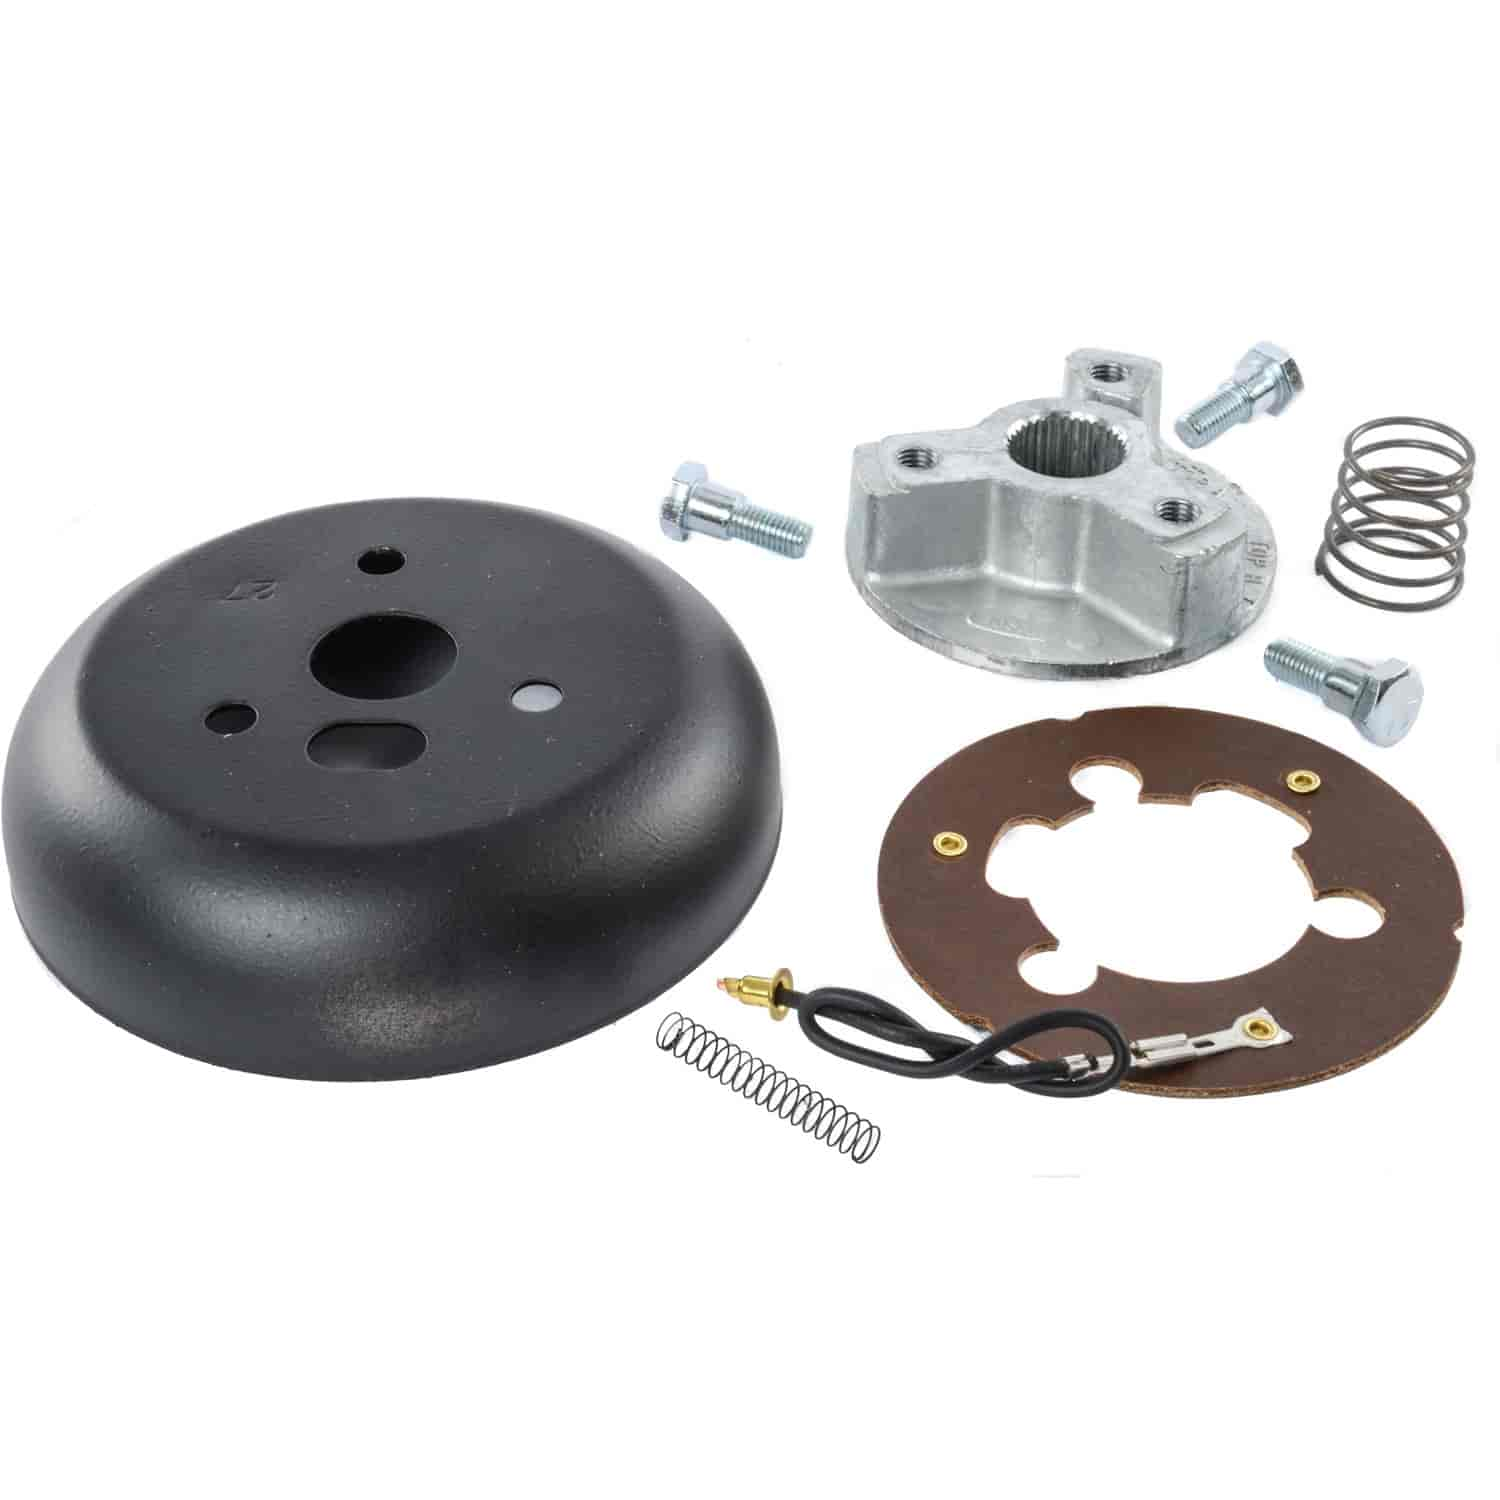 Grant 3196 - Grant Steering Wheel Installation Kits